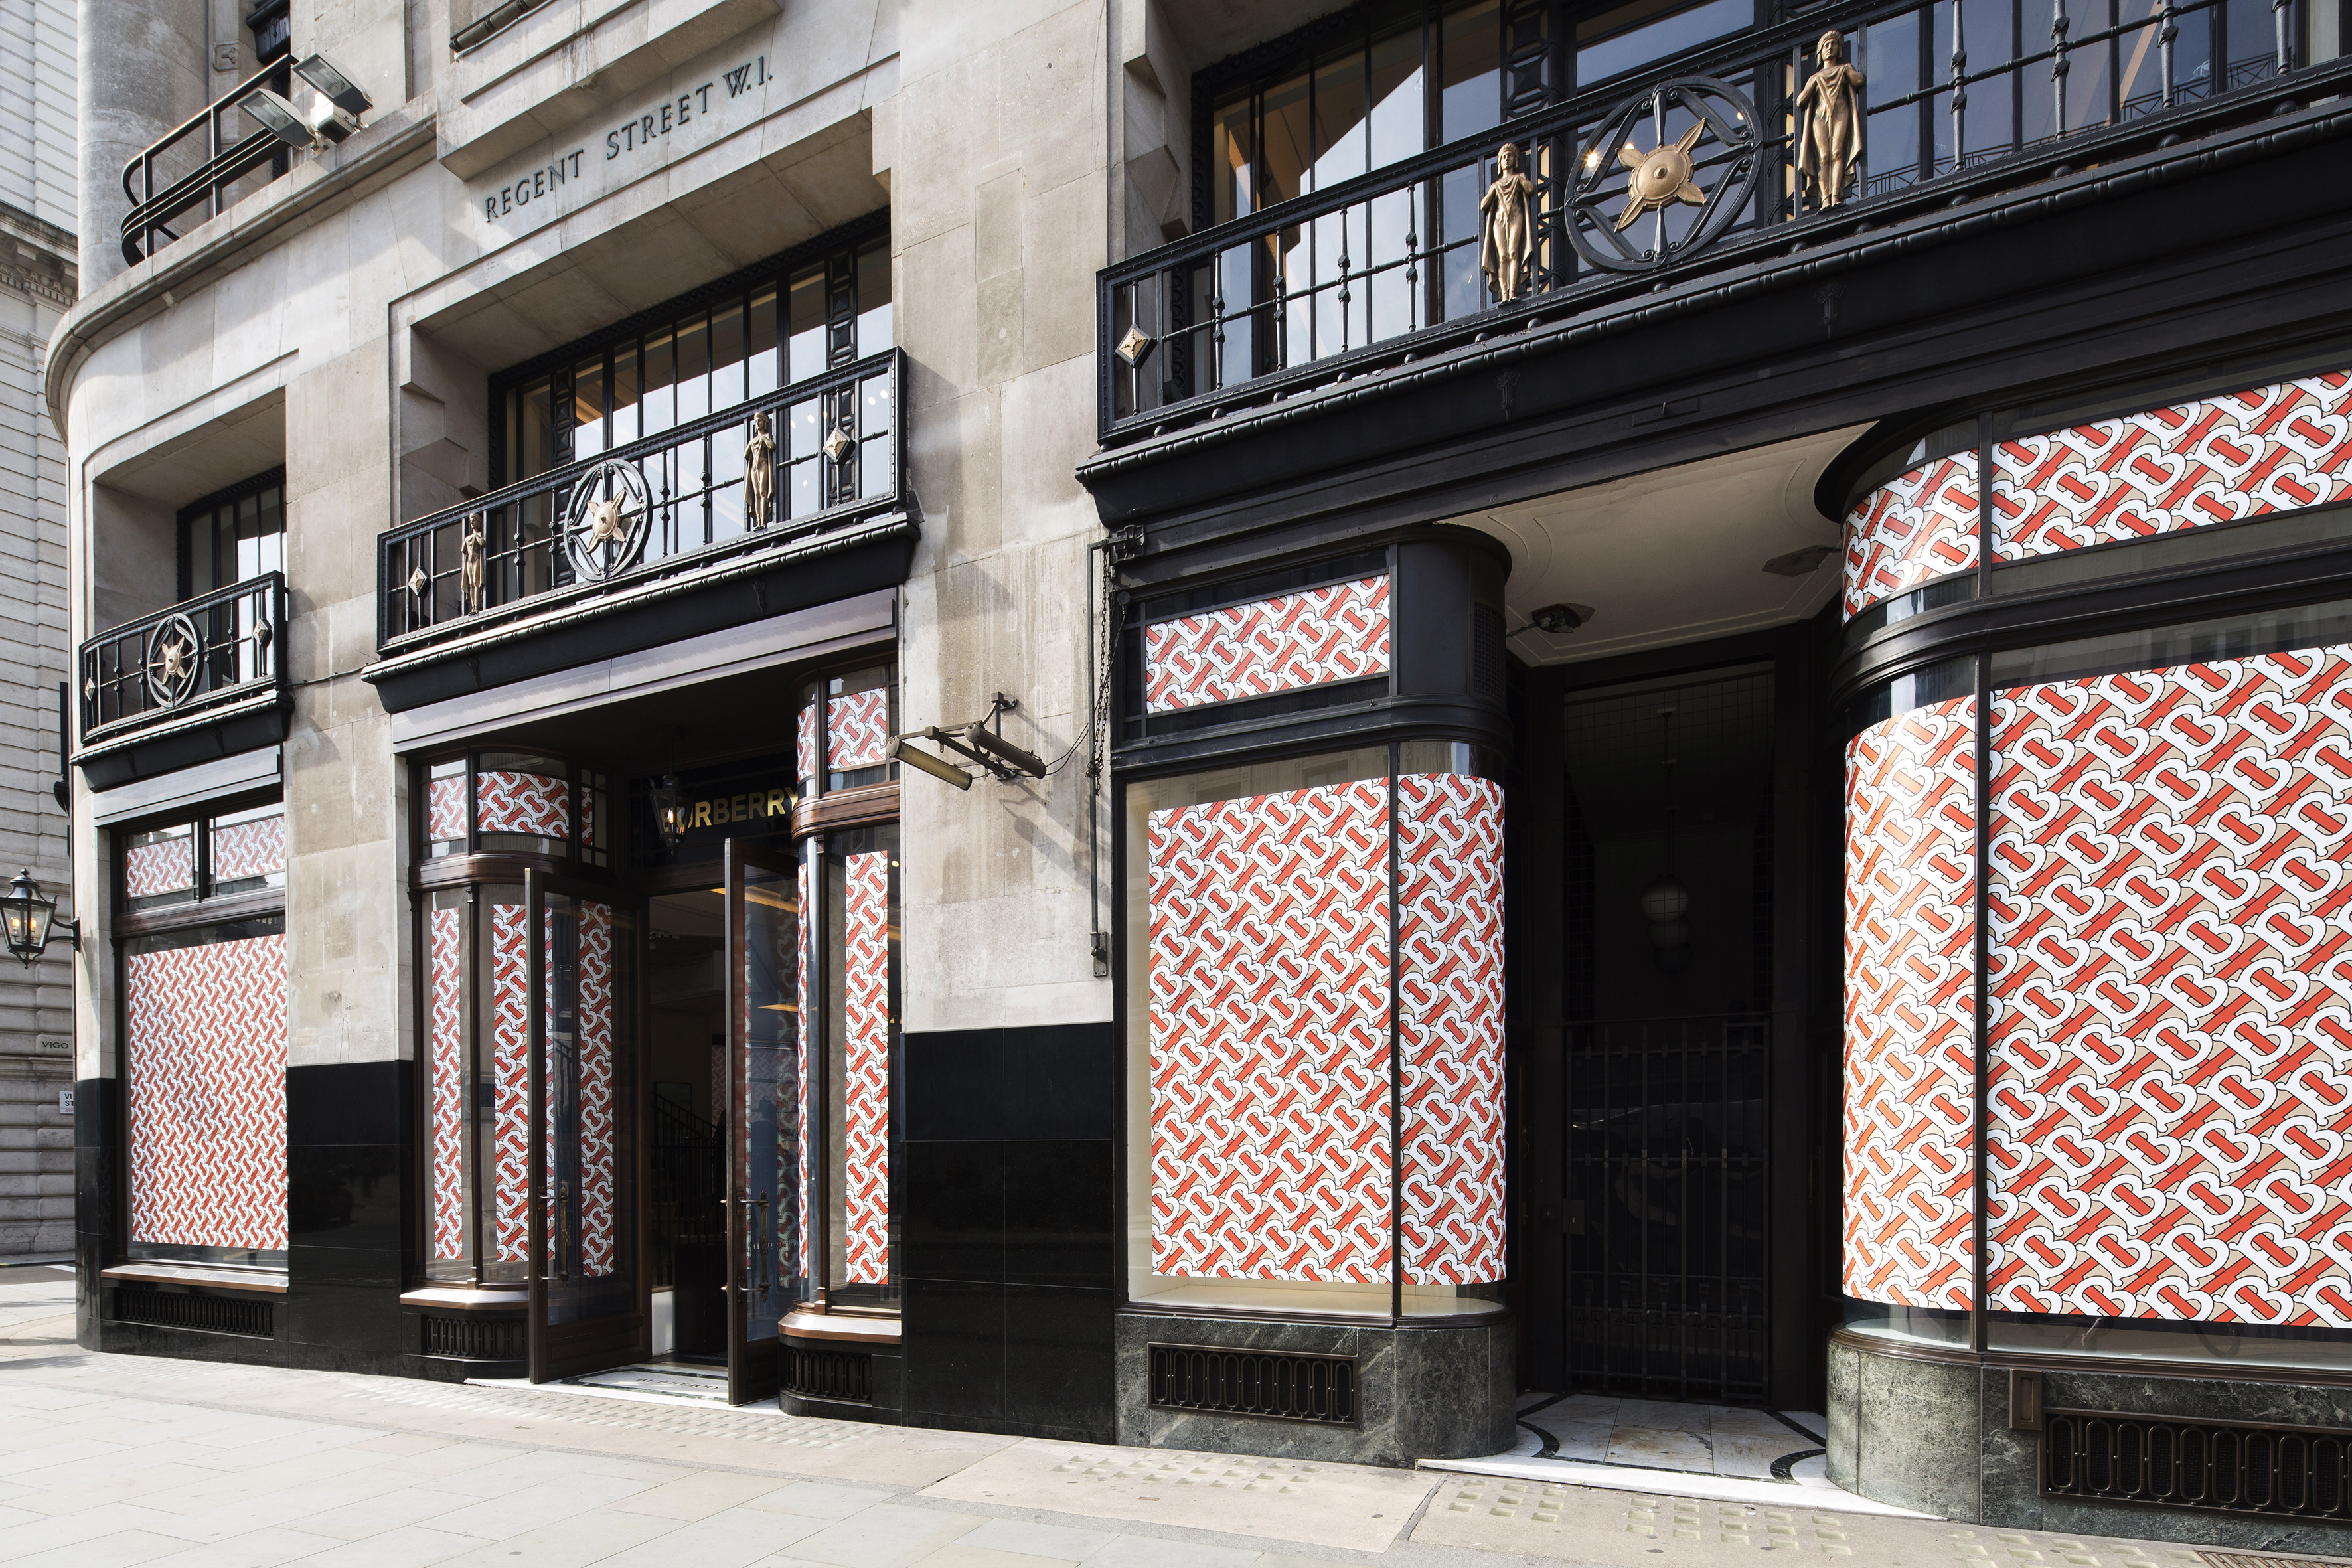 burberry_s-london-flagship-store-121-regent-street